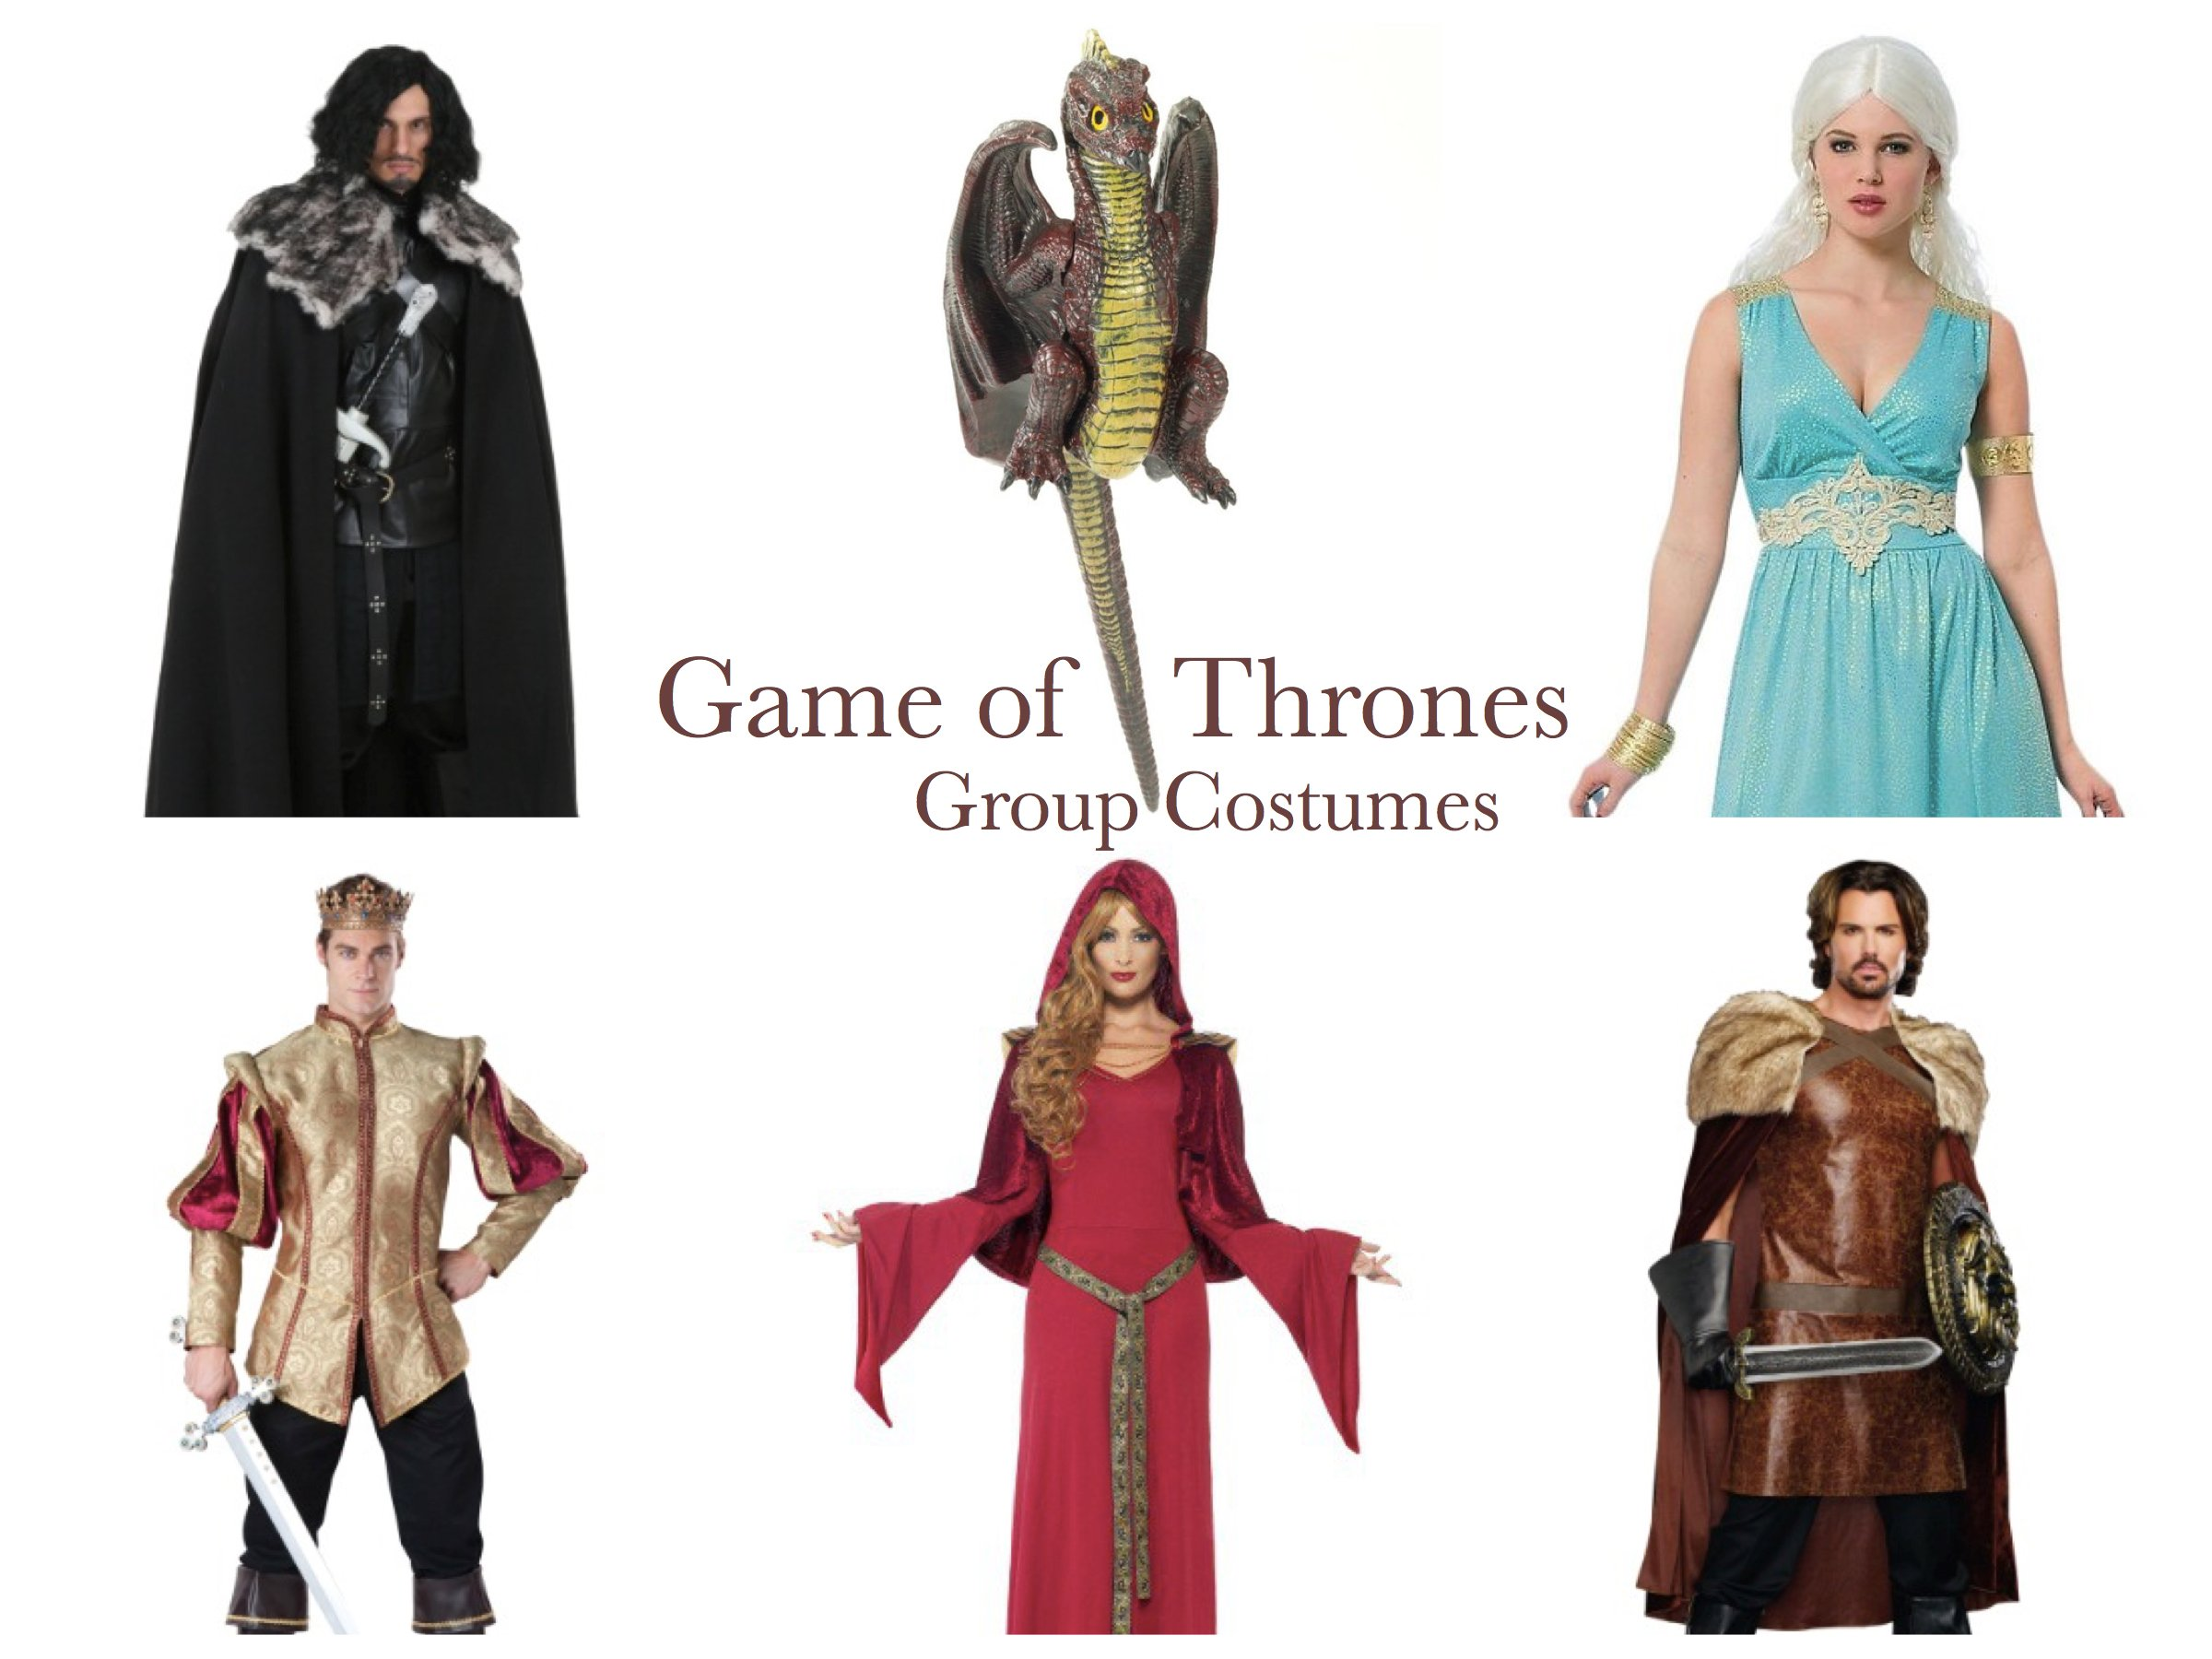 Game of Thrones Group Costumes